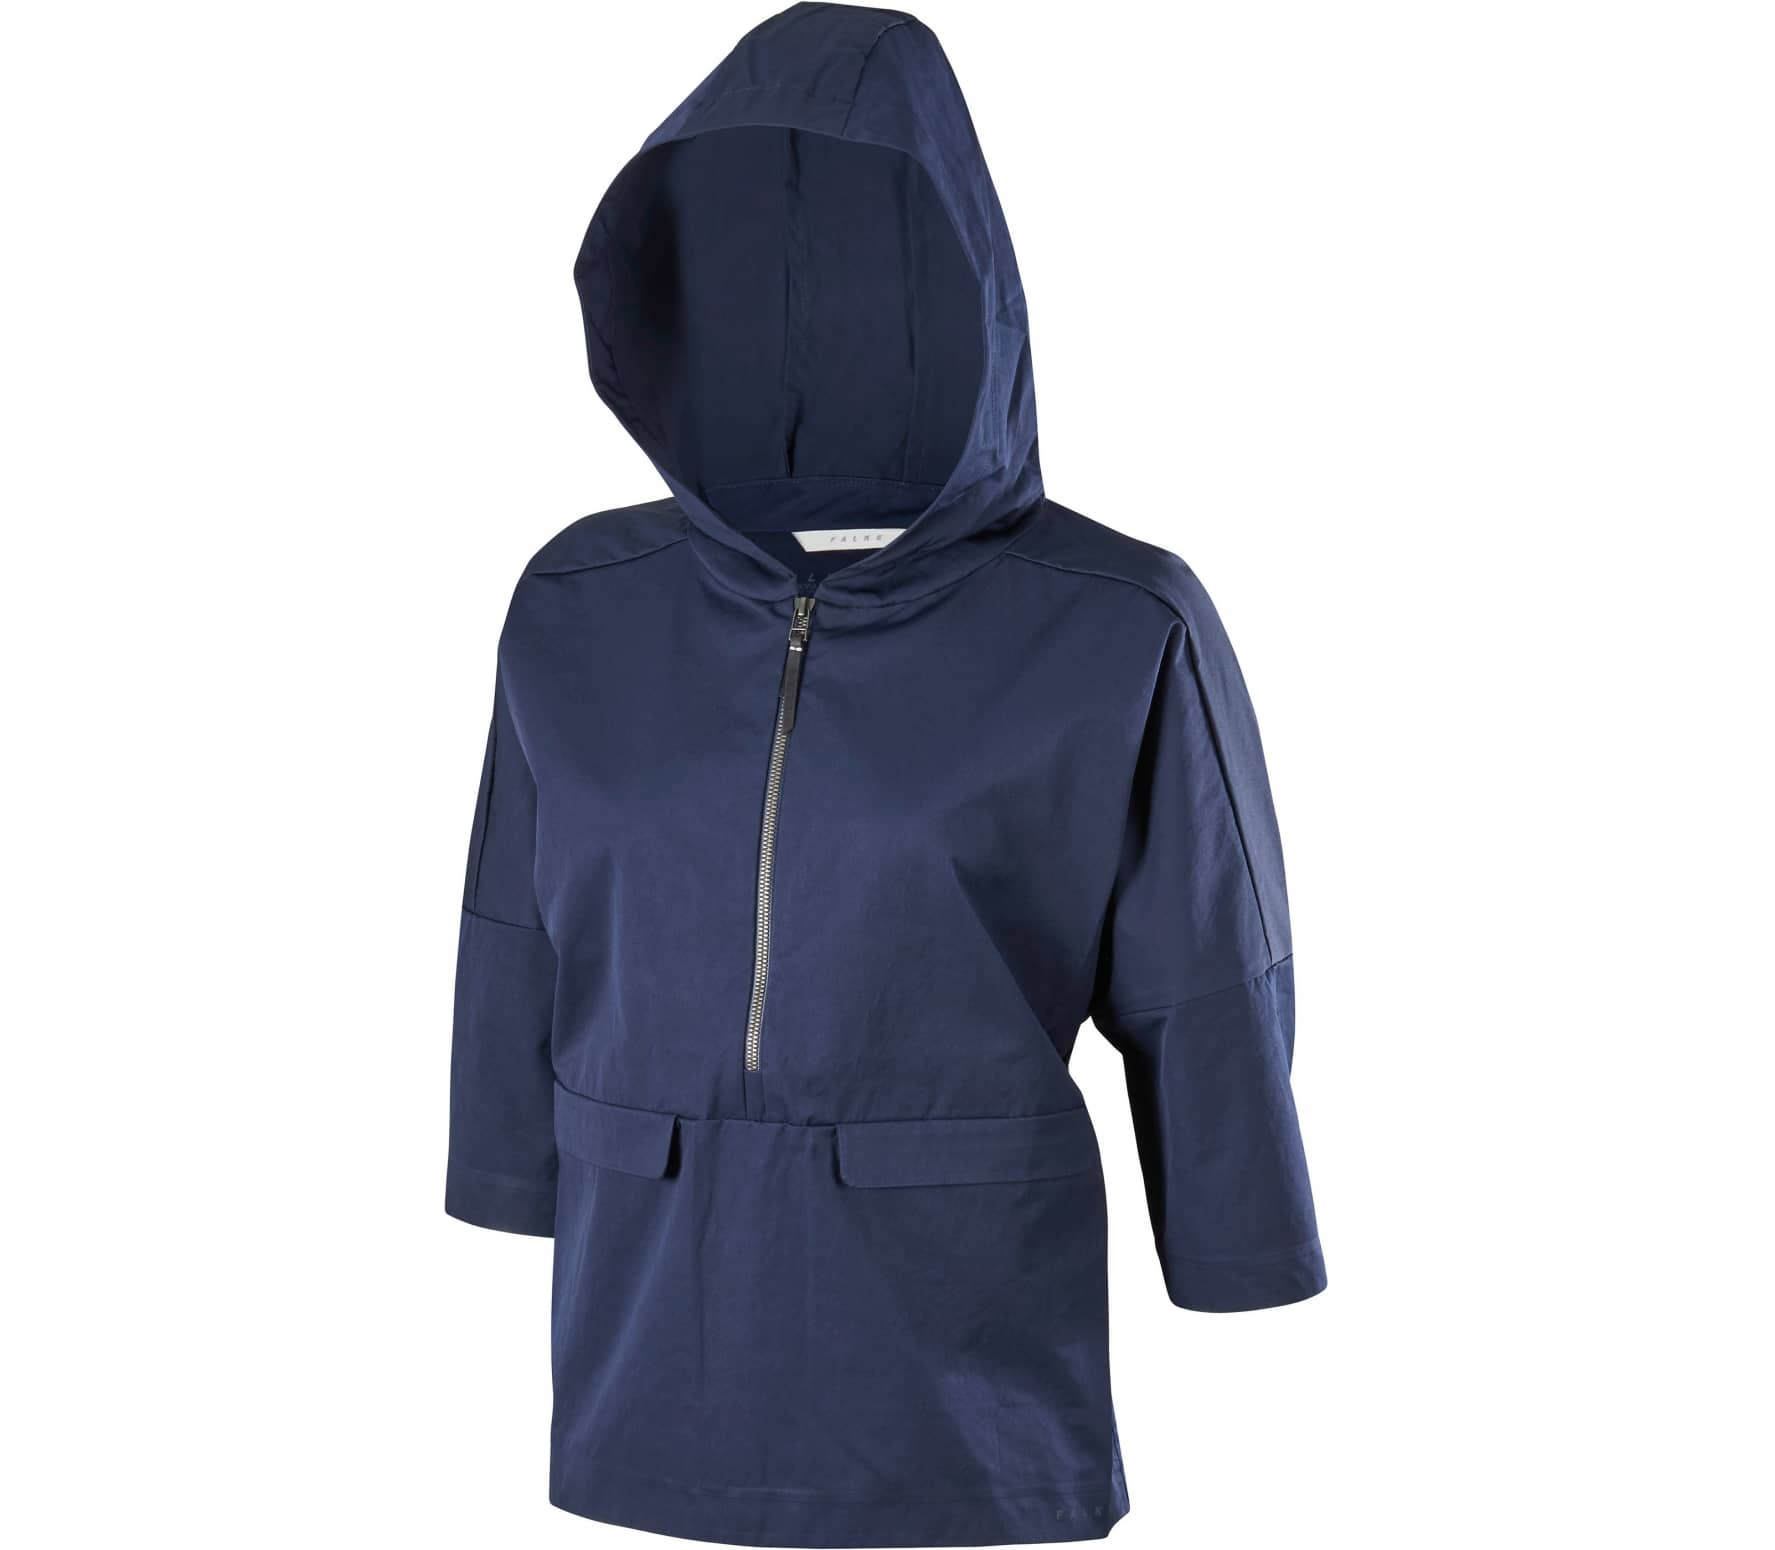 Falke - windbreaker women's running jacket (dark blue) - S thumbnail